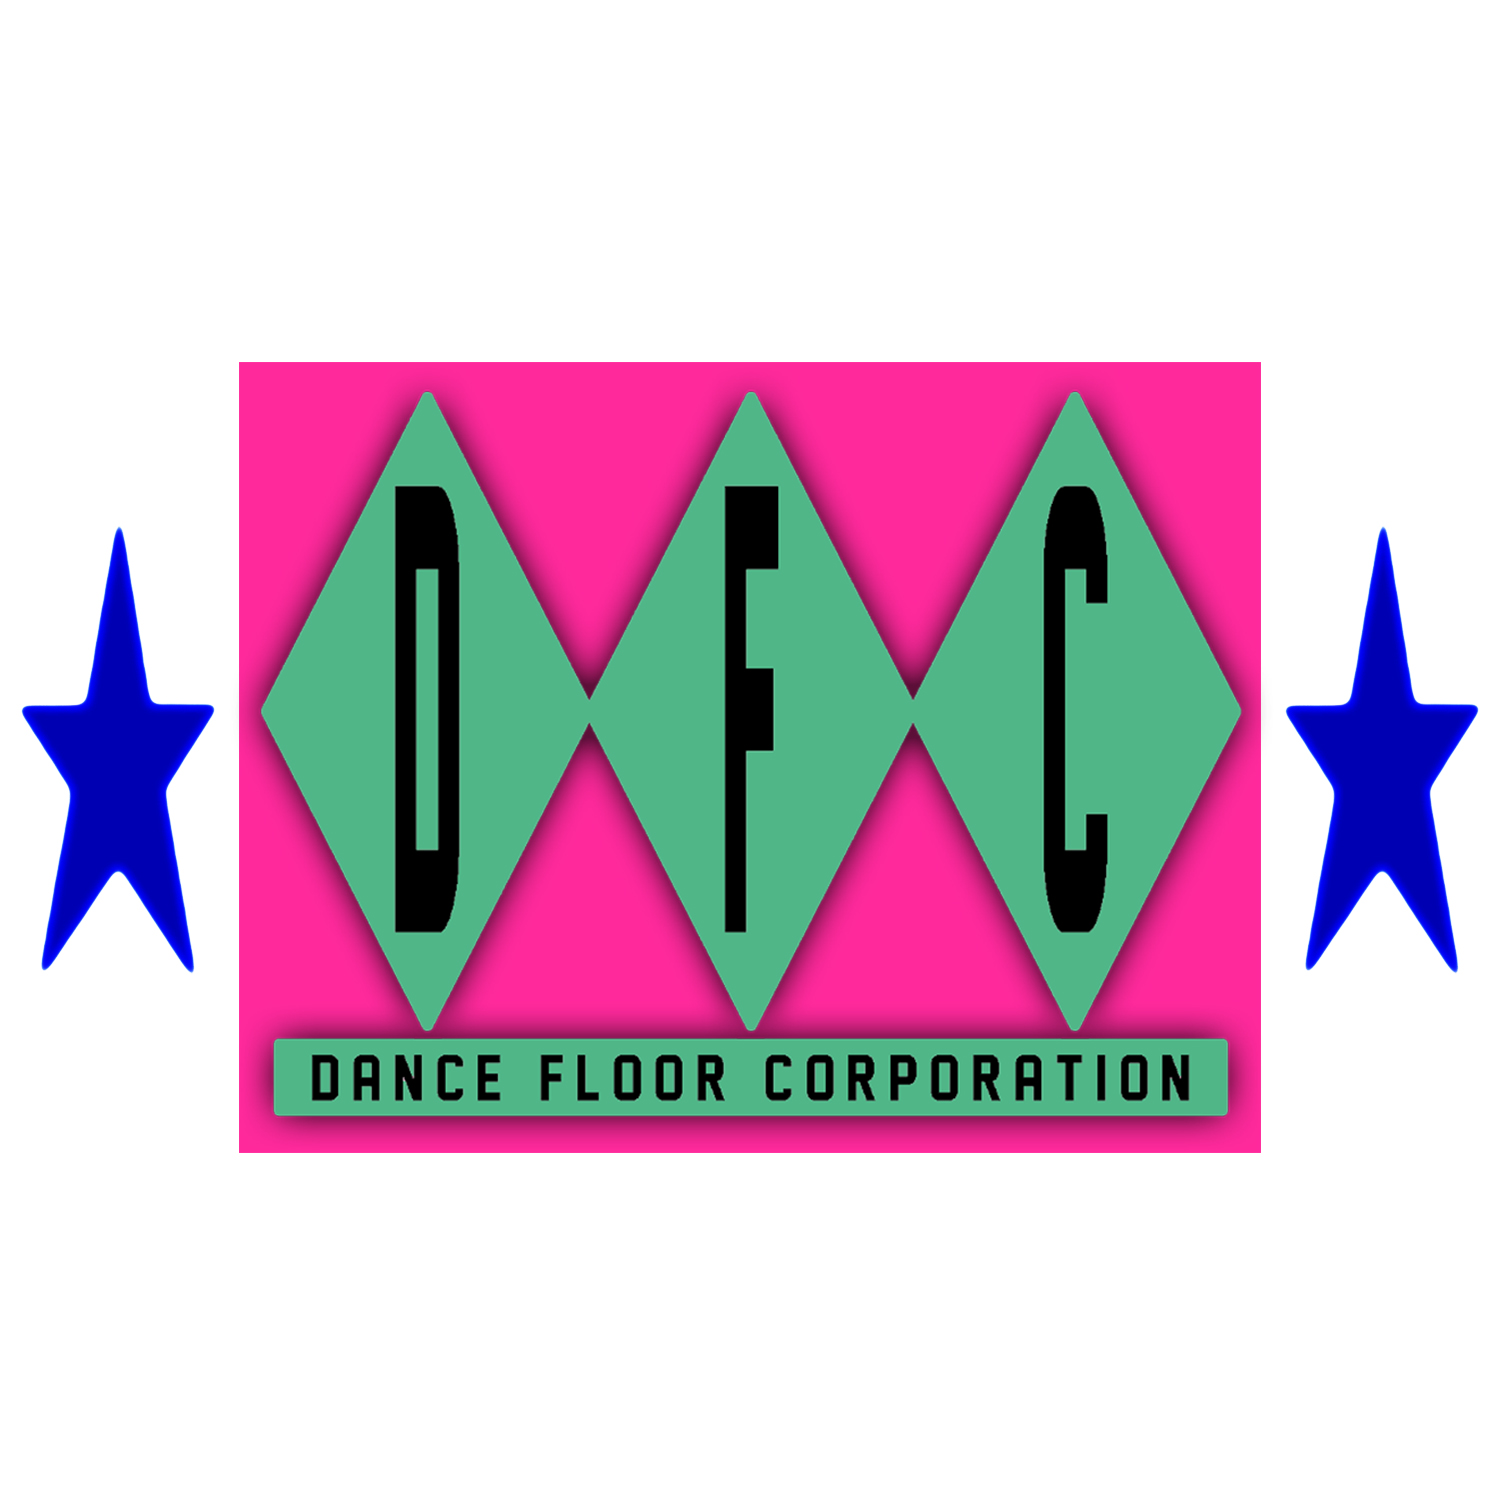 Dance Floor Corporation